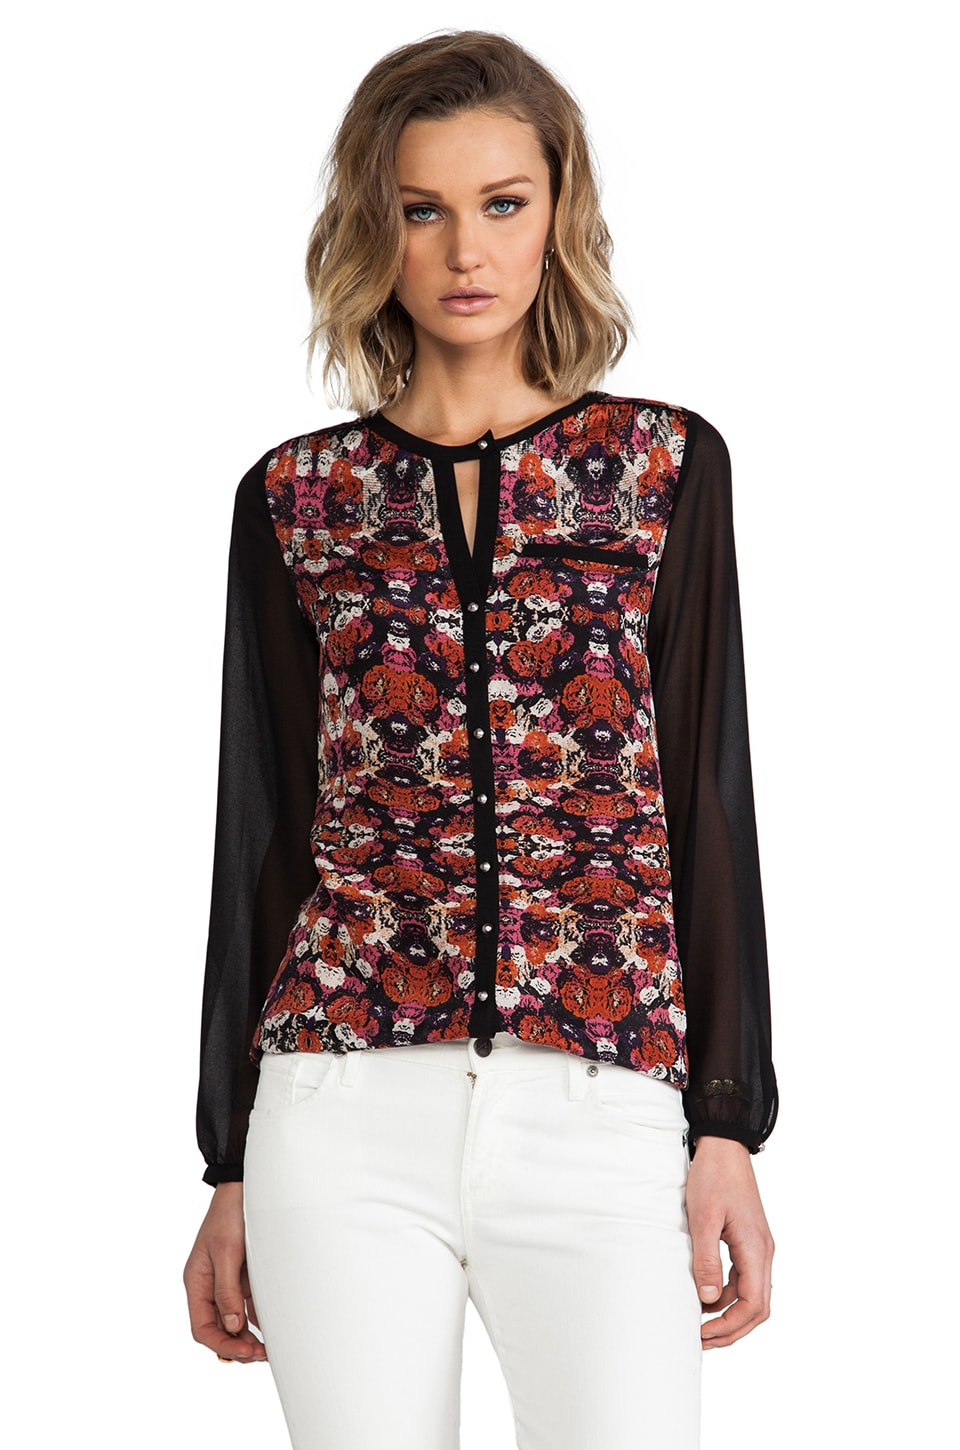 heartLoom Leslie Silk Floral Top in Onyx